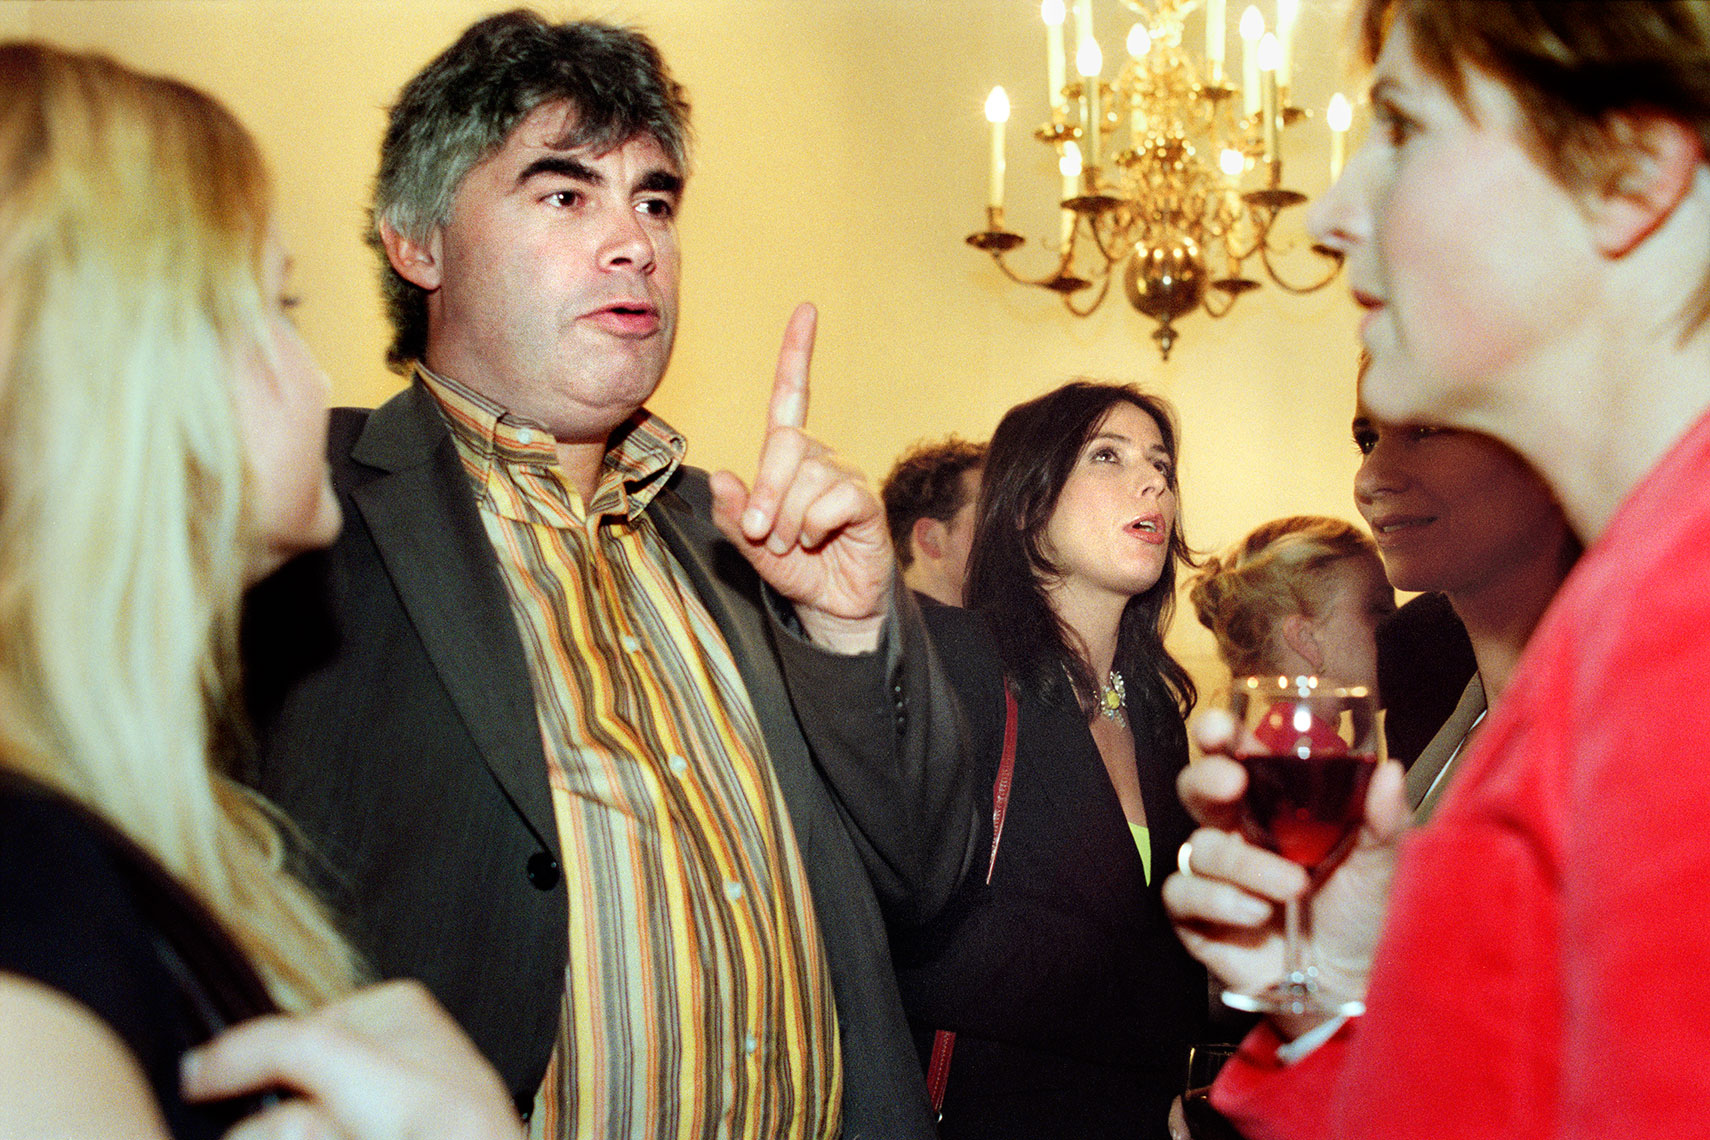 Rob Oudkerk and Heleen van Royen at the infamous afterparty of the 2003 edition of 'Het Groot Dictee der Nederlandse Taal' | Mike Harris Photography